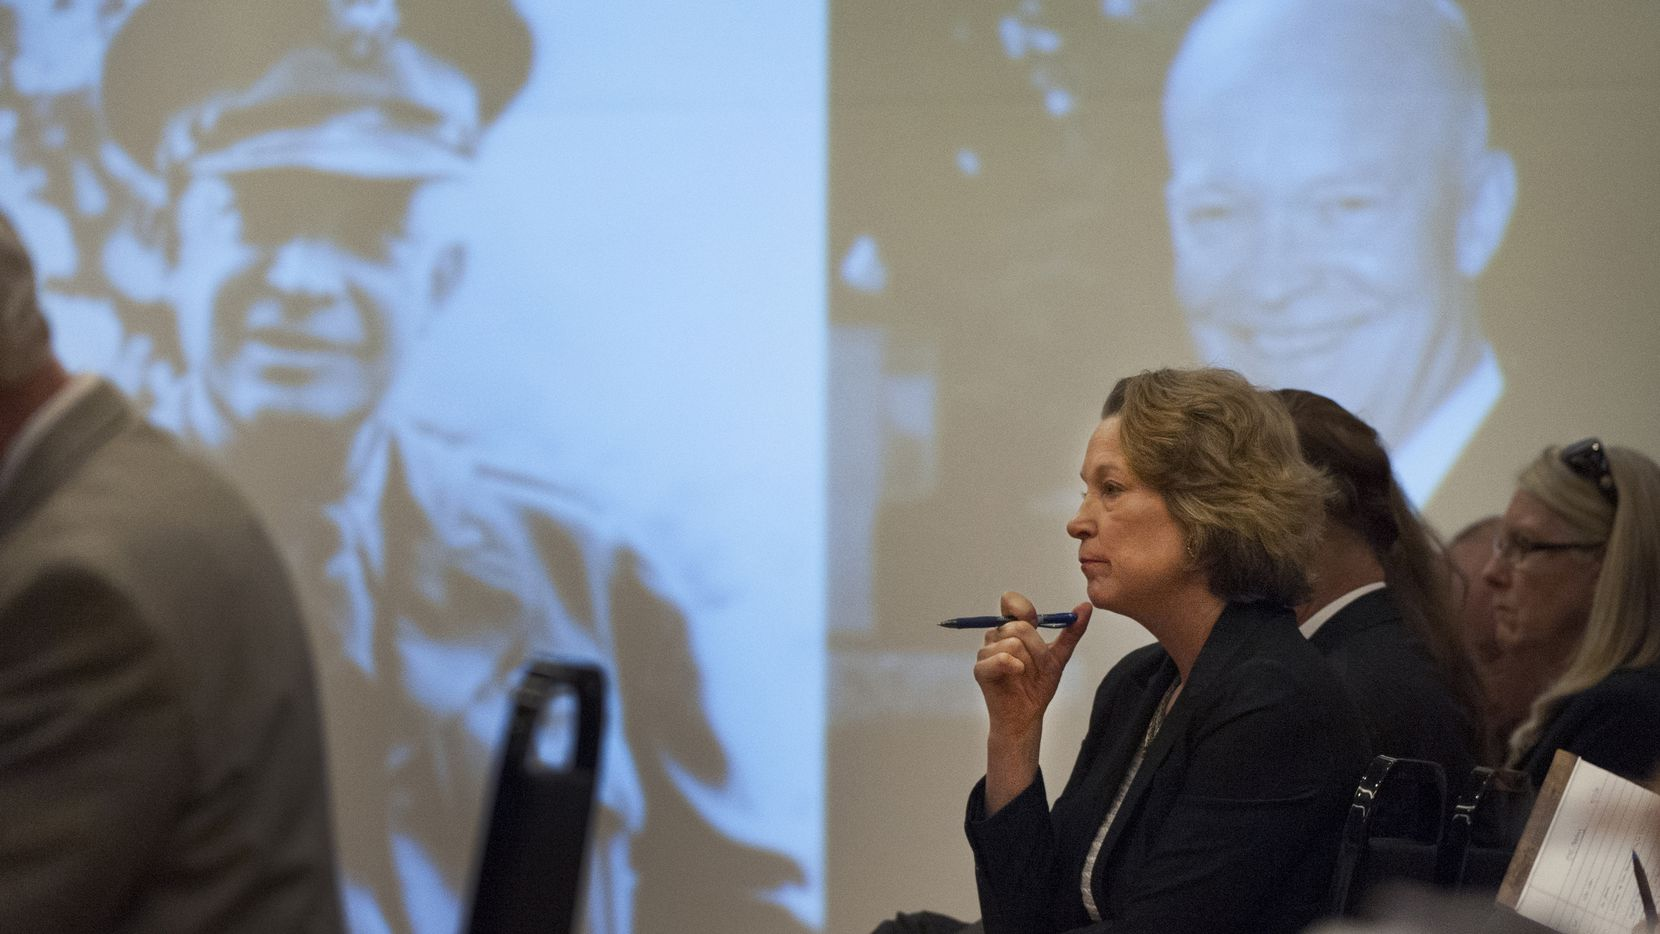 Susan Eisenhower, granddaughter of President Dwight D. Eisenhower, attended a 2014 meeting of the Eisenhower Memorial Commission in Washington, D.C. The author will take part in a virtual program for the Allen Public Library on Sept. 24.